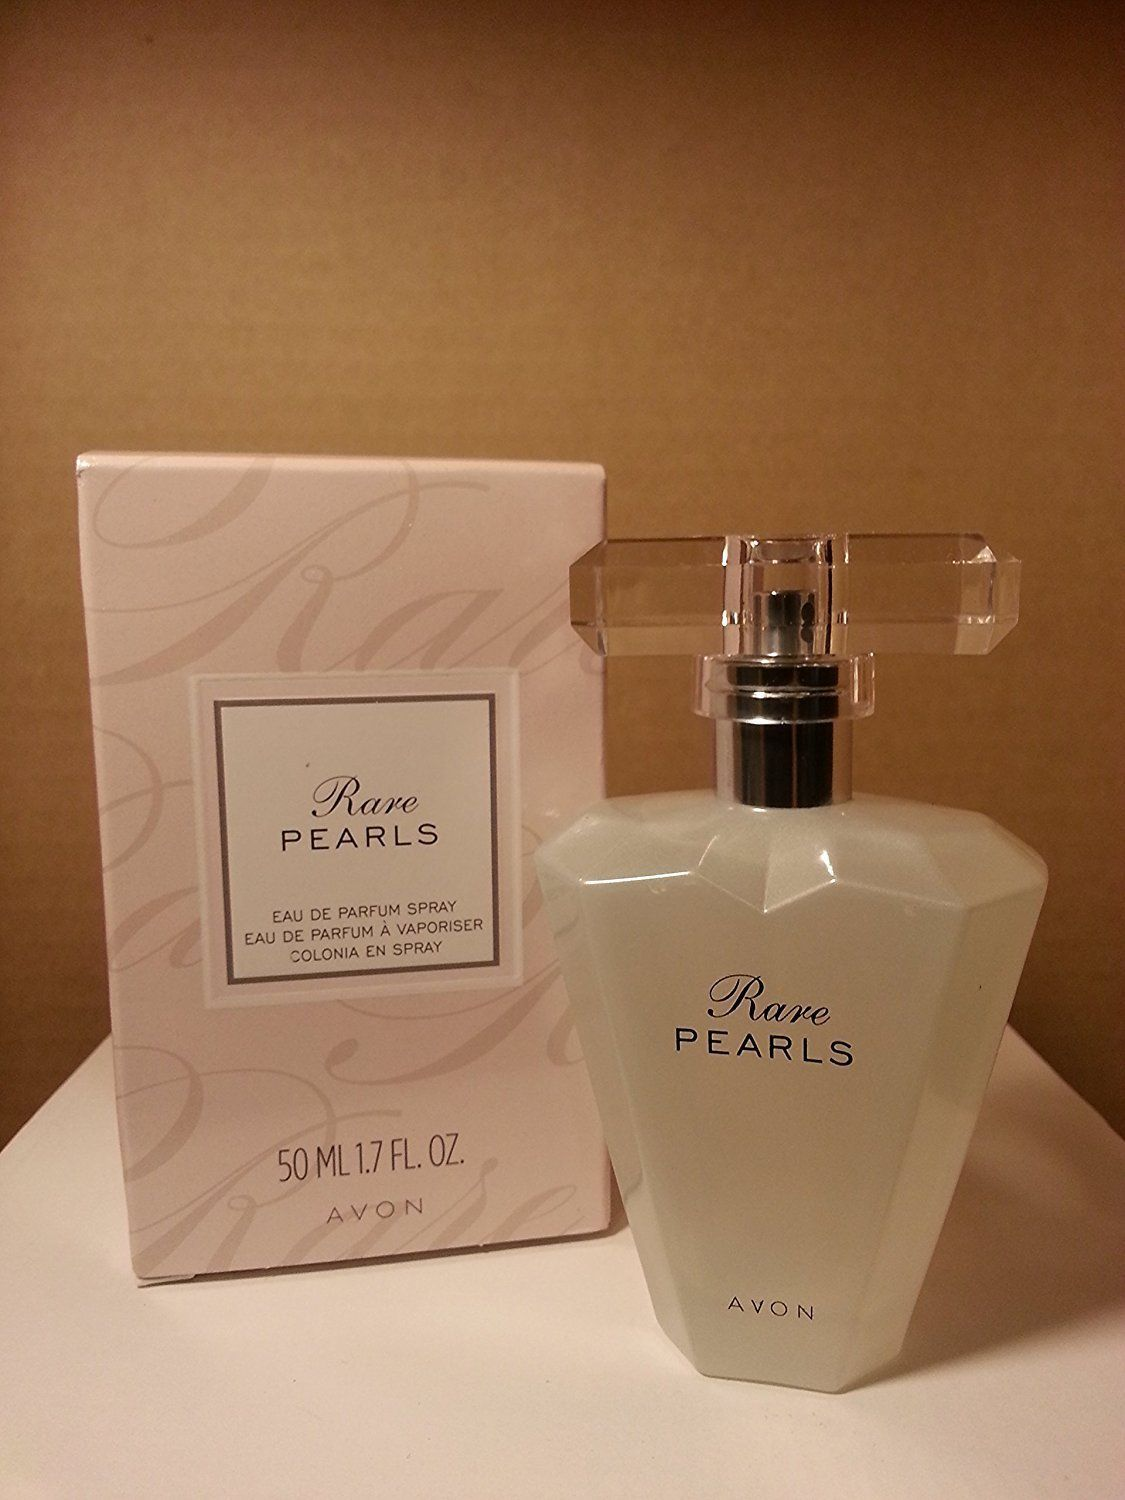 Avon Rare Pearls Eau De Parfum Spray 17 Fl Oz Products Original Antonio Banderas Radiant Seduction In Black Man Edt 100ml